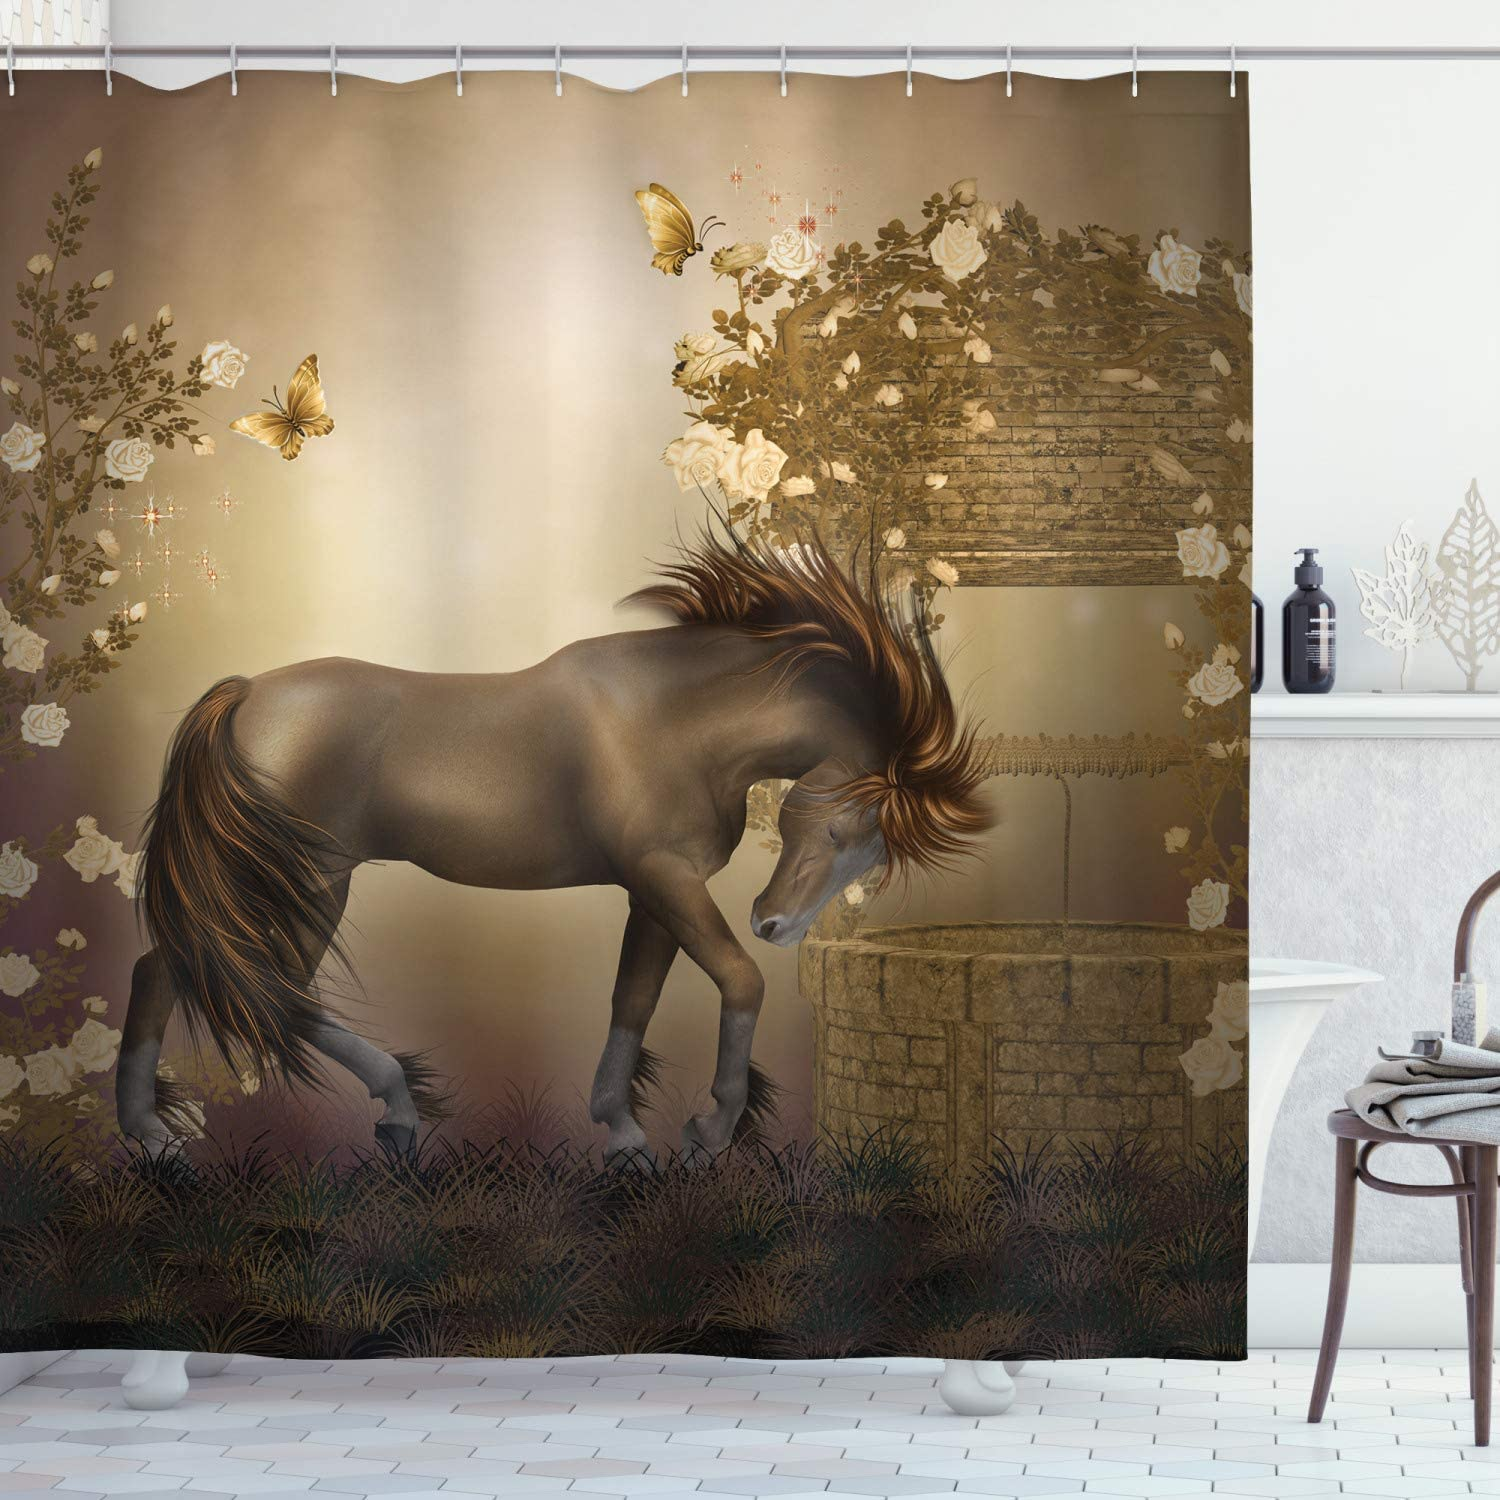 "Ambesonne Mystic Shower Curtain, Horse in Roses Garden with Butterflies Fantasy Romantic Moon Print, Cloth Fabric Bathroom Decor Set with Hooks, 70"" Long, Beige Brown"